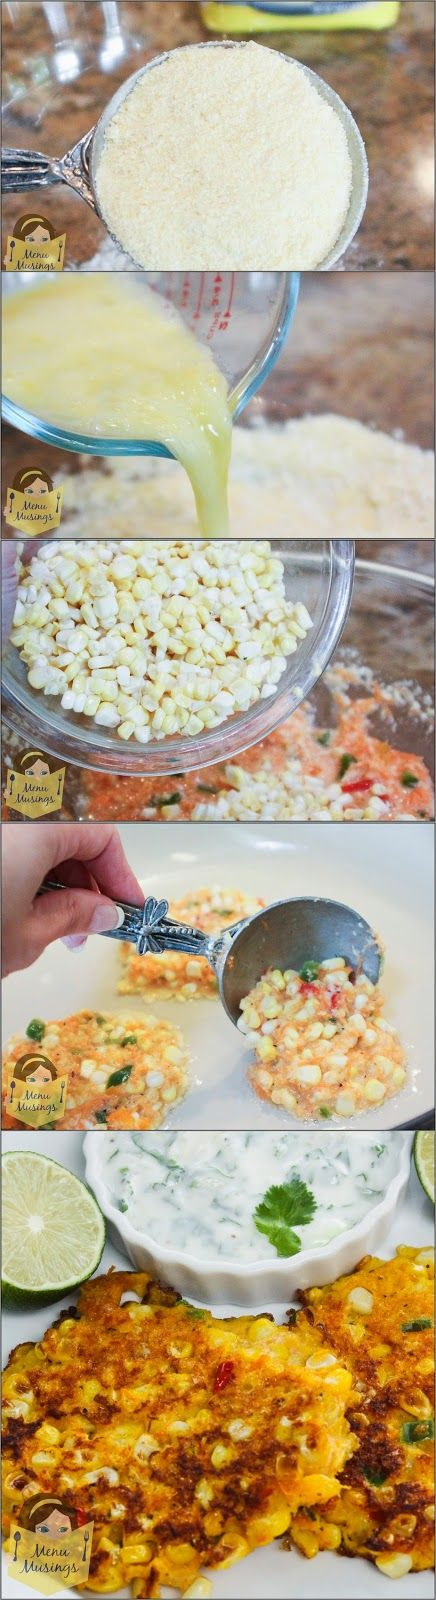 Corn Cakes with Cilantro Lime Cream - for all those sweet ears of fresh summer corn in the markets! A step-by-step photo tutorial. :)